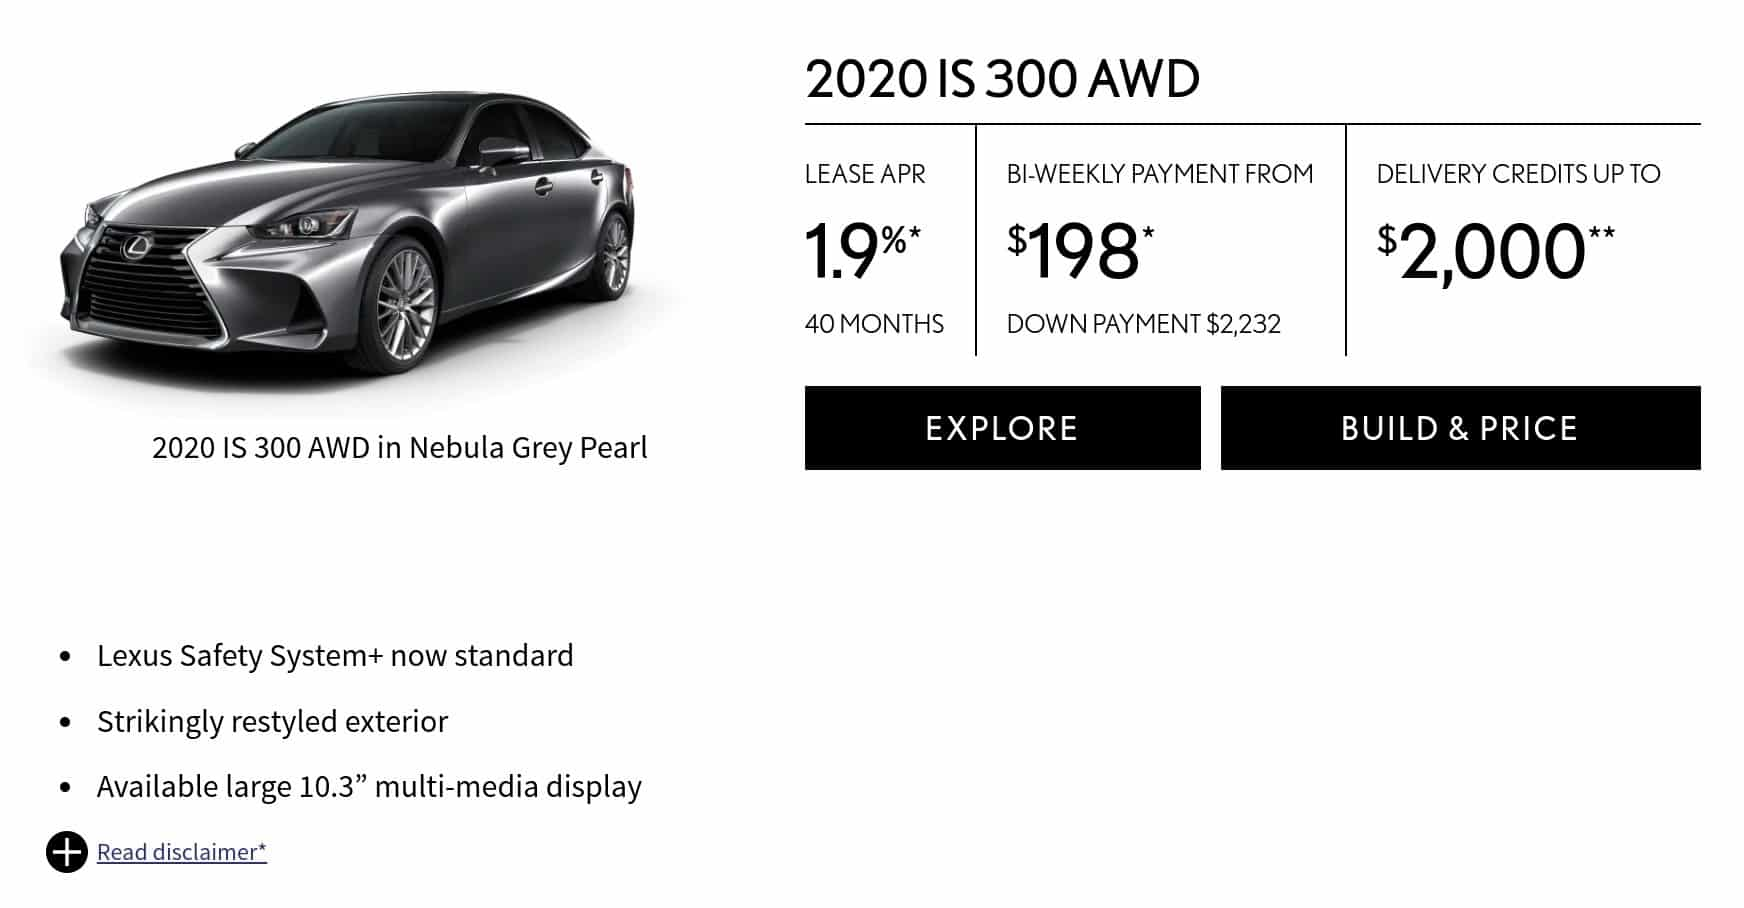 2020 Lexus IS 300 is one of the best new car deals in Canada